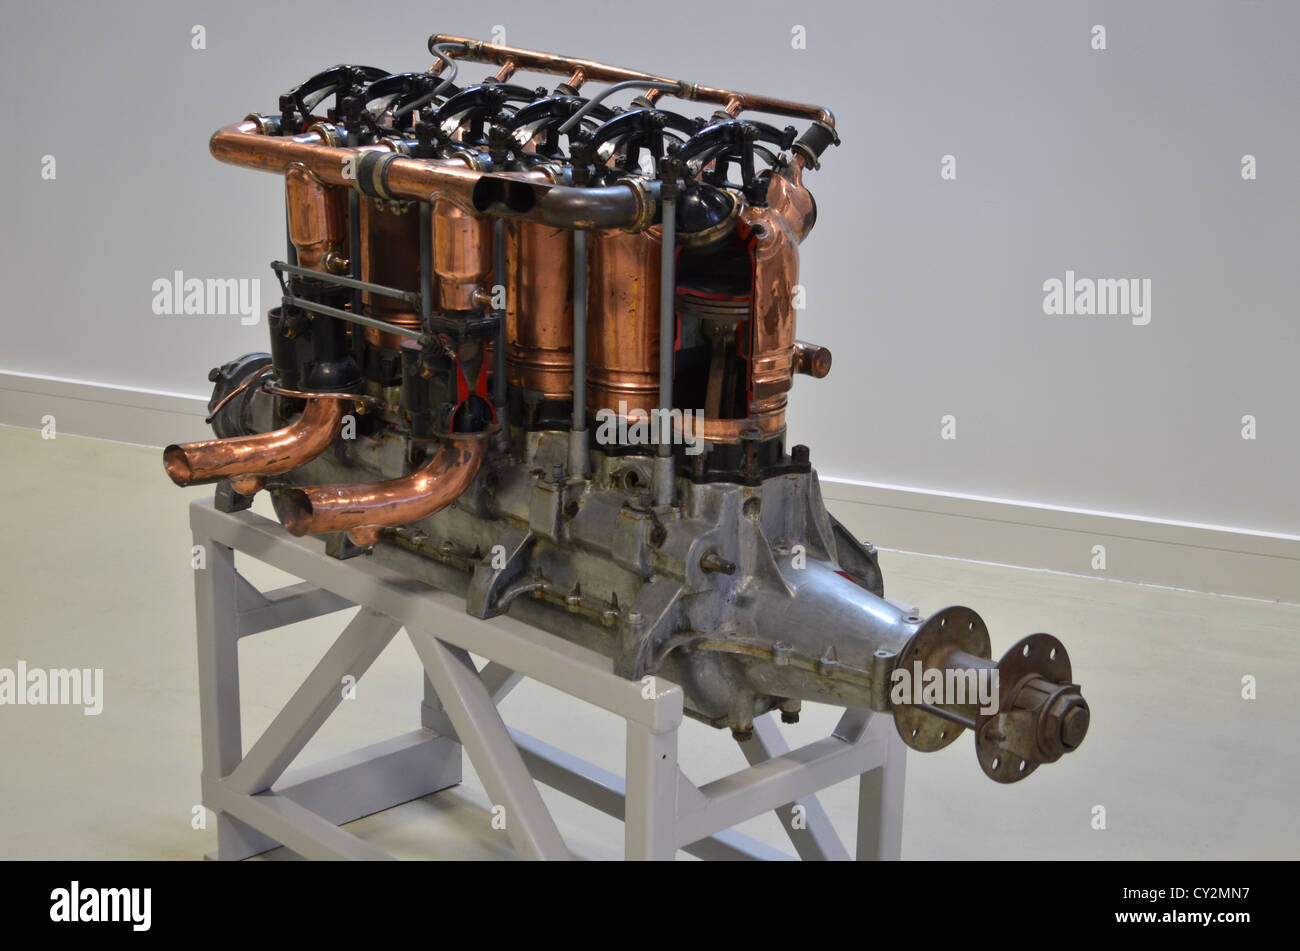 Beardmore 160hp 6-cylinder aero engine on display at Duxford Airspace - Stock Image